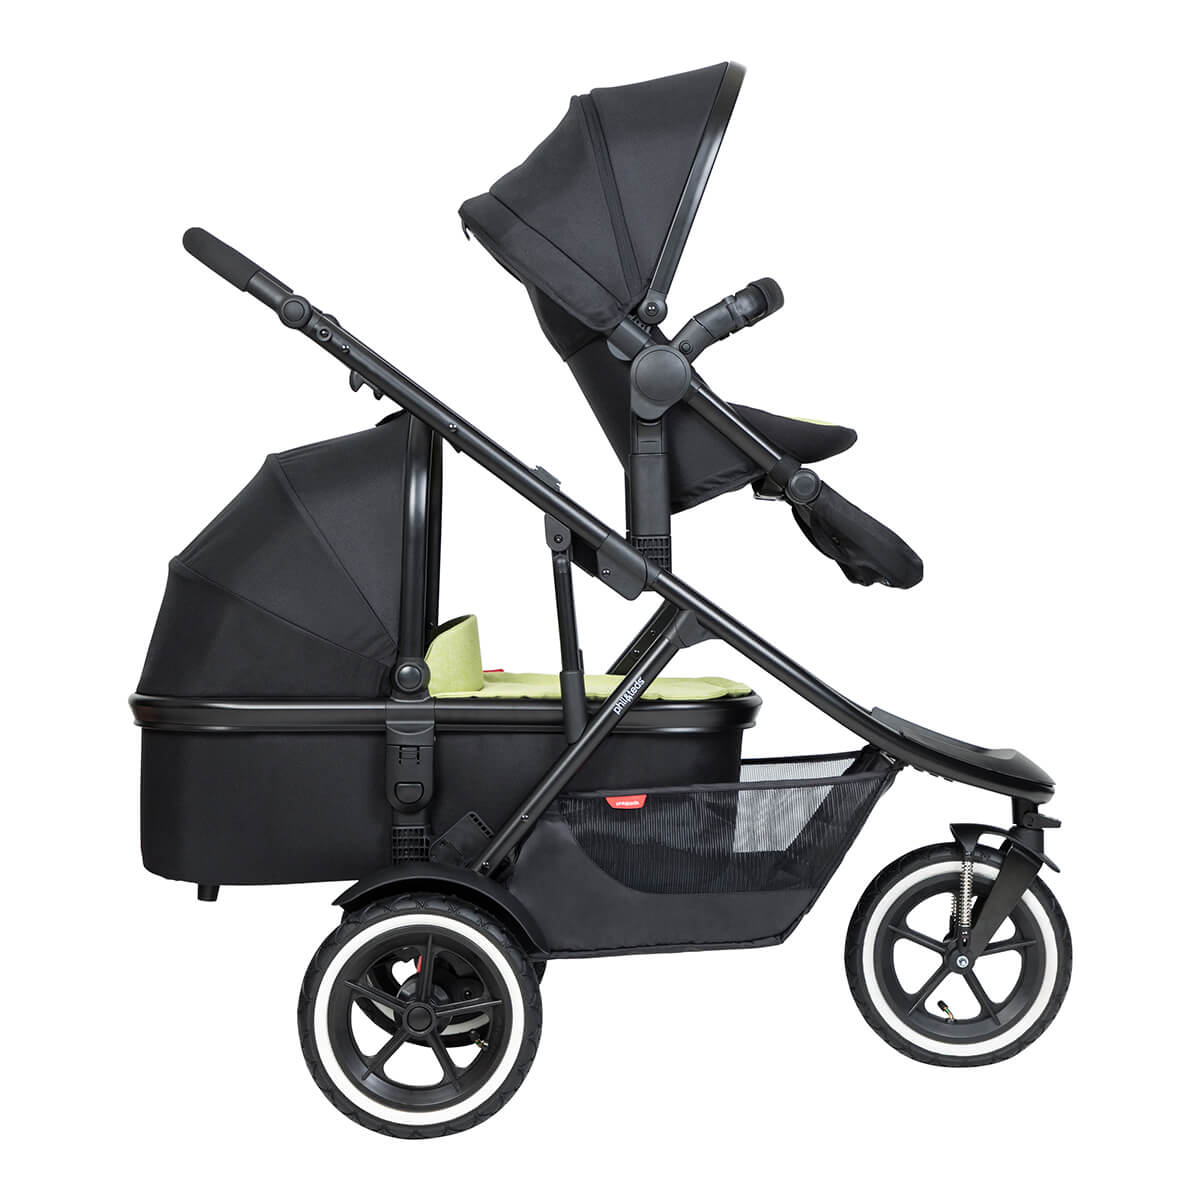 https://cdn.accentuate.io/4546157969513/19119322726505/philteds-sport-buggy-with-double-kit-extended-clip-and-snug-carrycot-side-view-v1625778325632.jpg?1200x1200